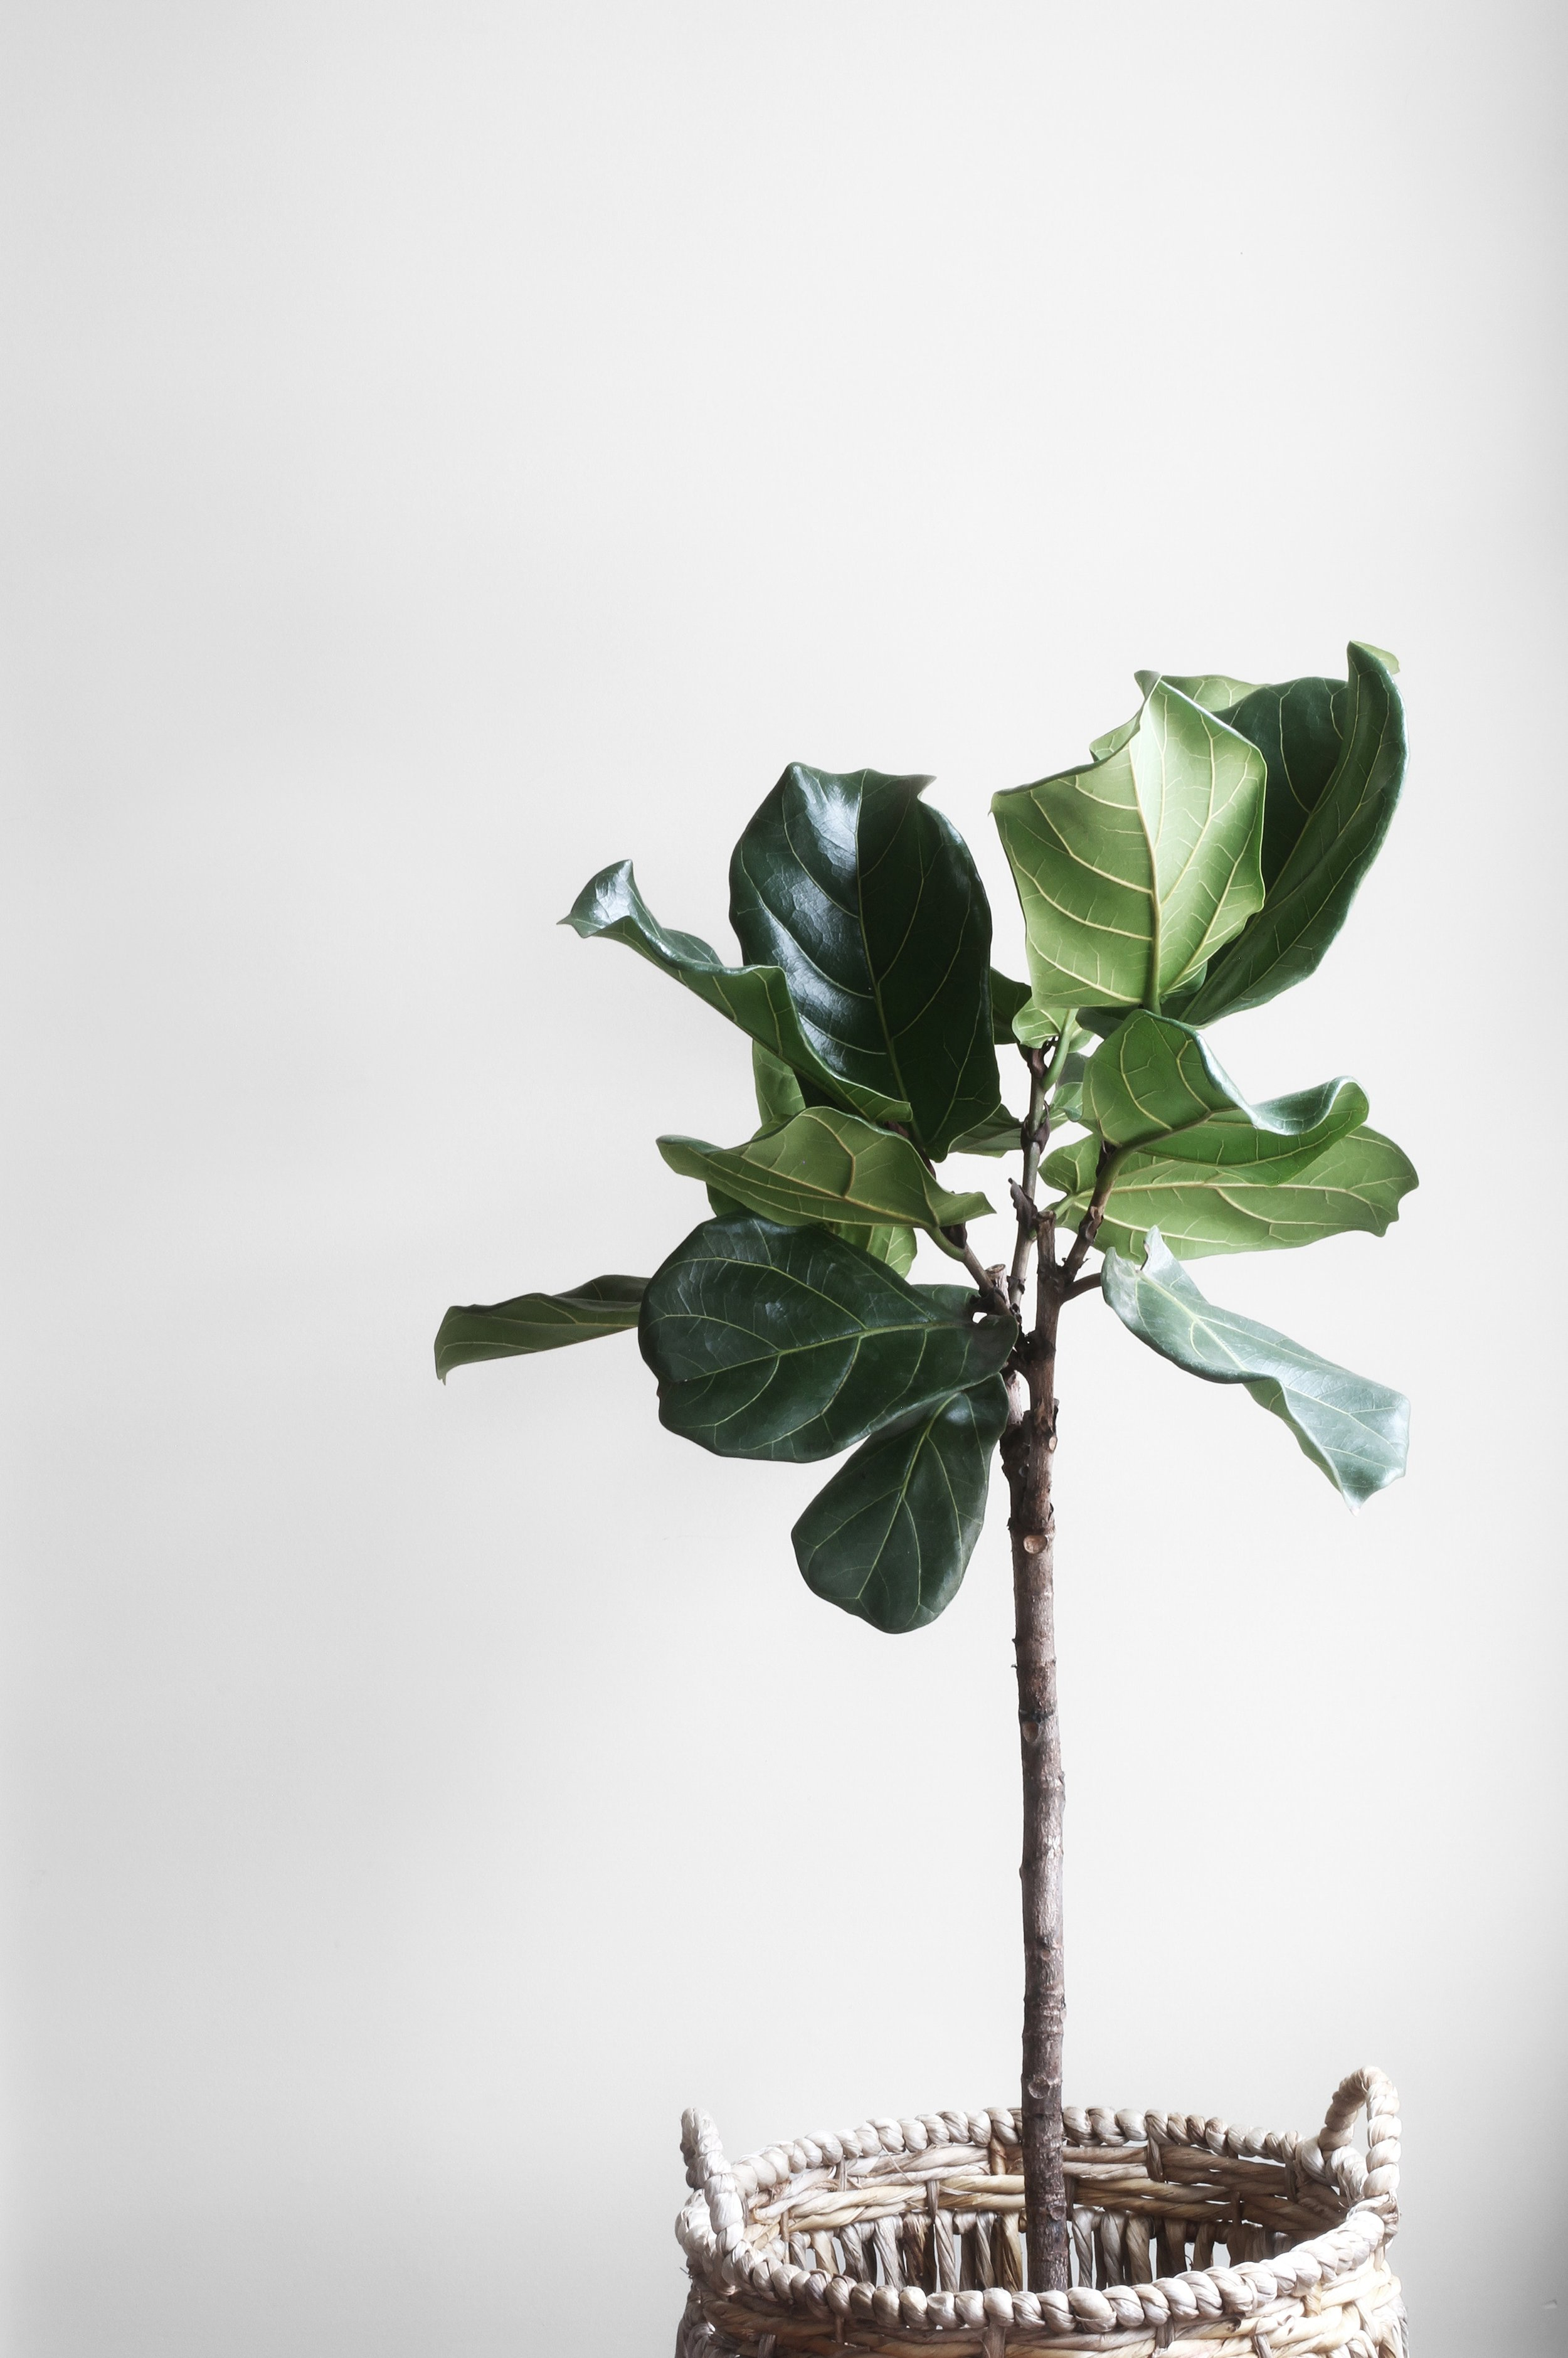 The 10 Essential House Plants - Fiddle-Leaf Fig